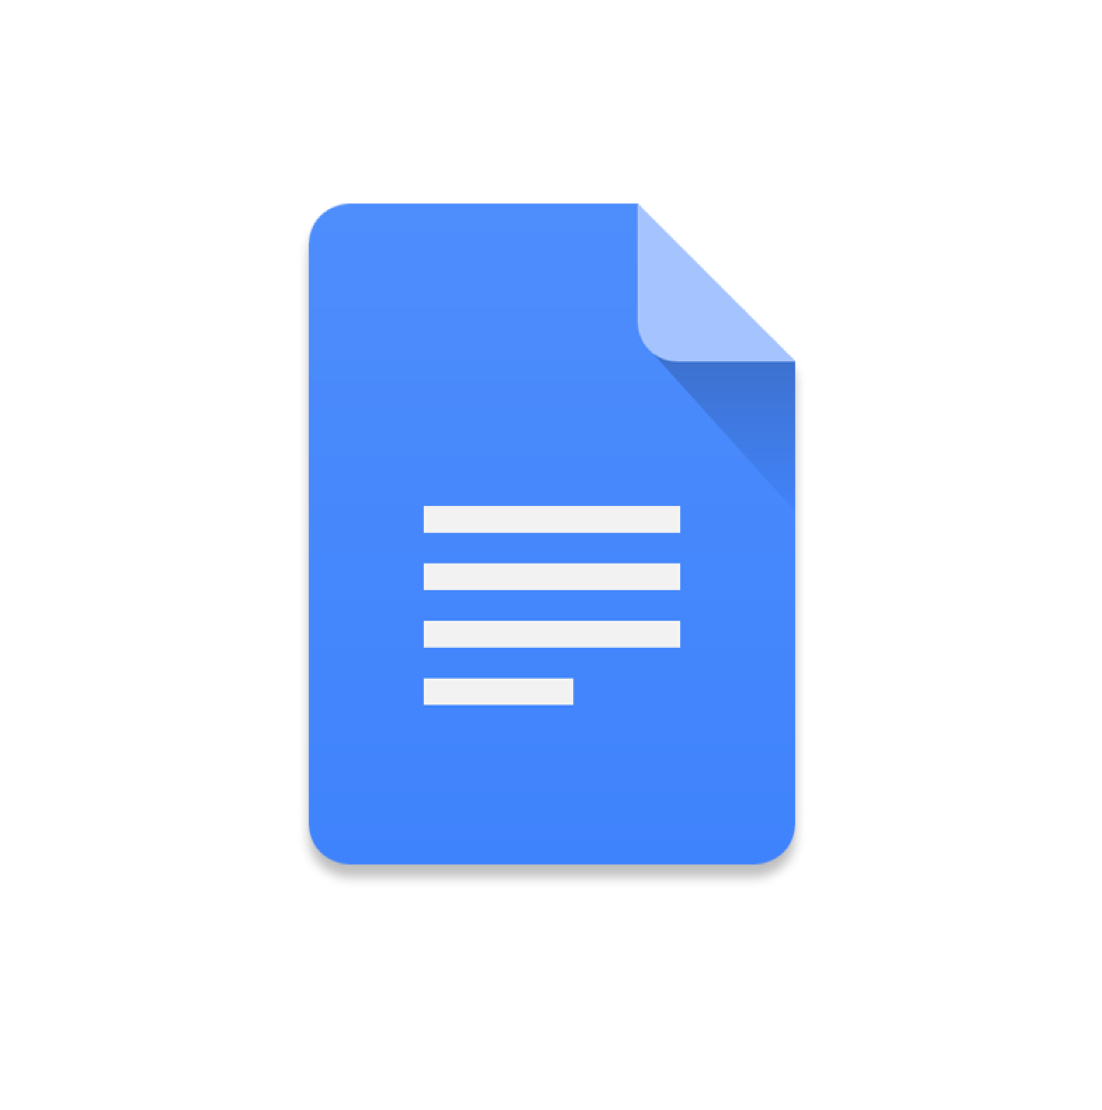 Google docs png. Mobile app application software